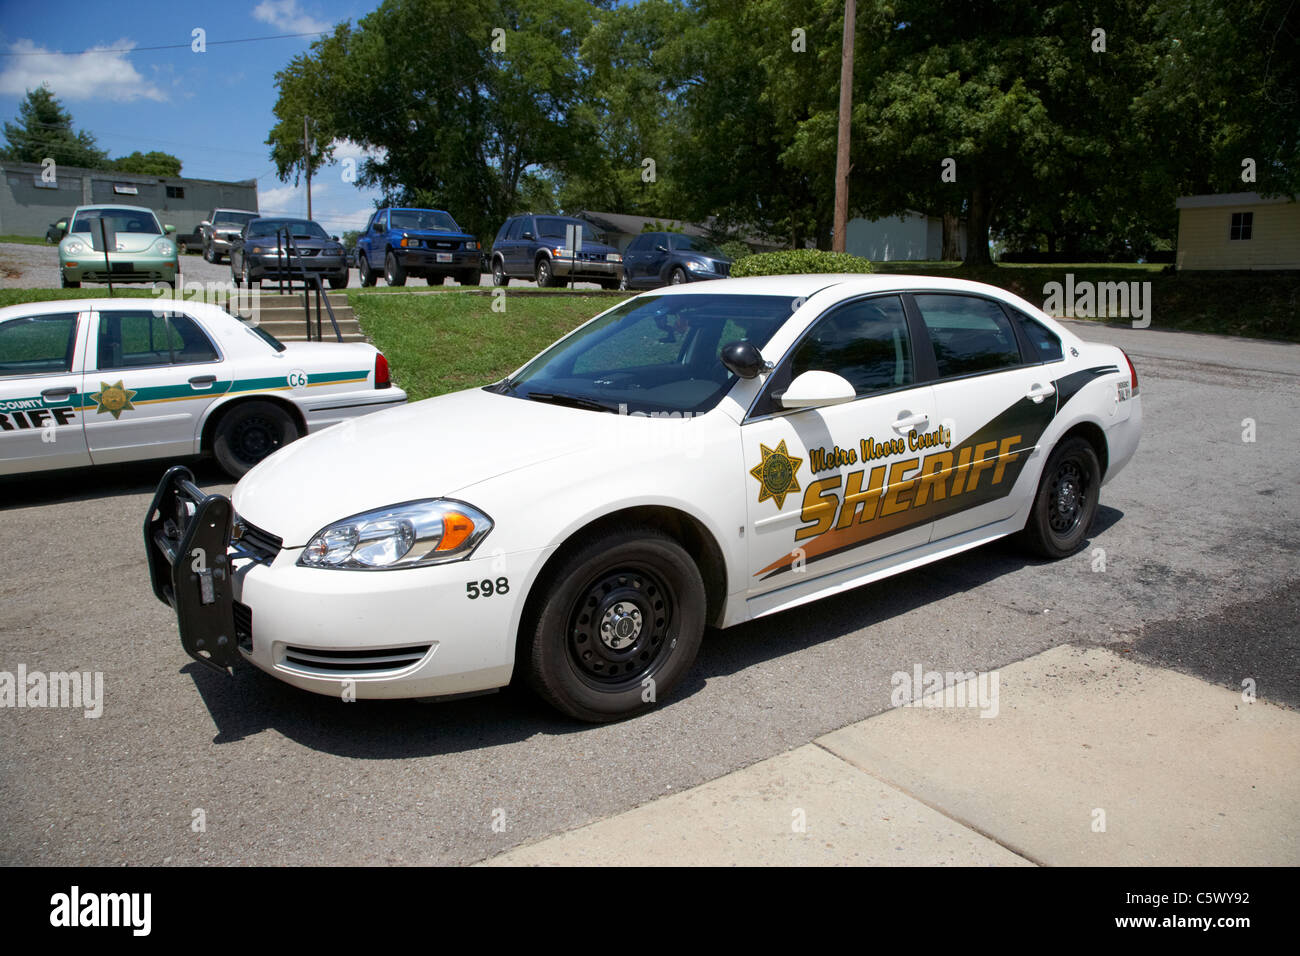 metro moore county sheriffs dept police car vehicle Lynchburg , tennessee , usa - Stock Image